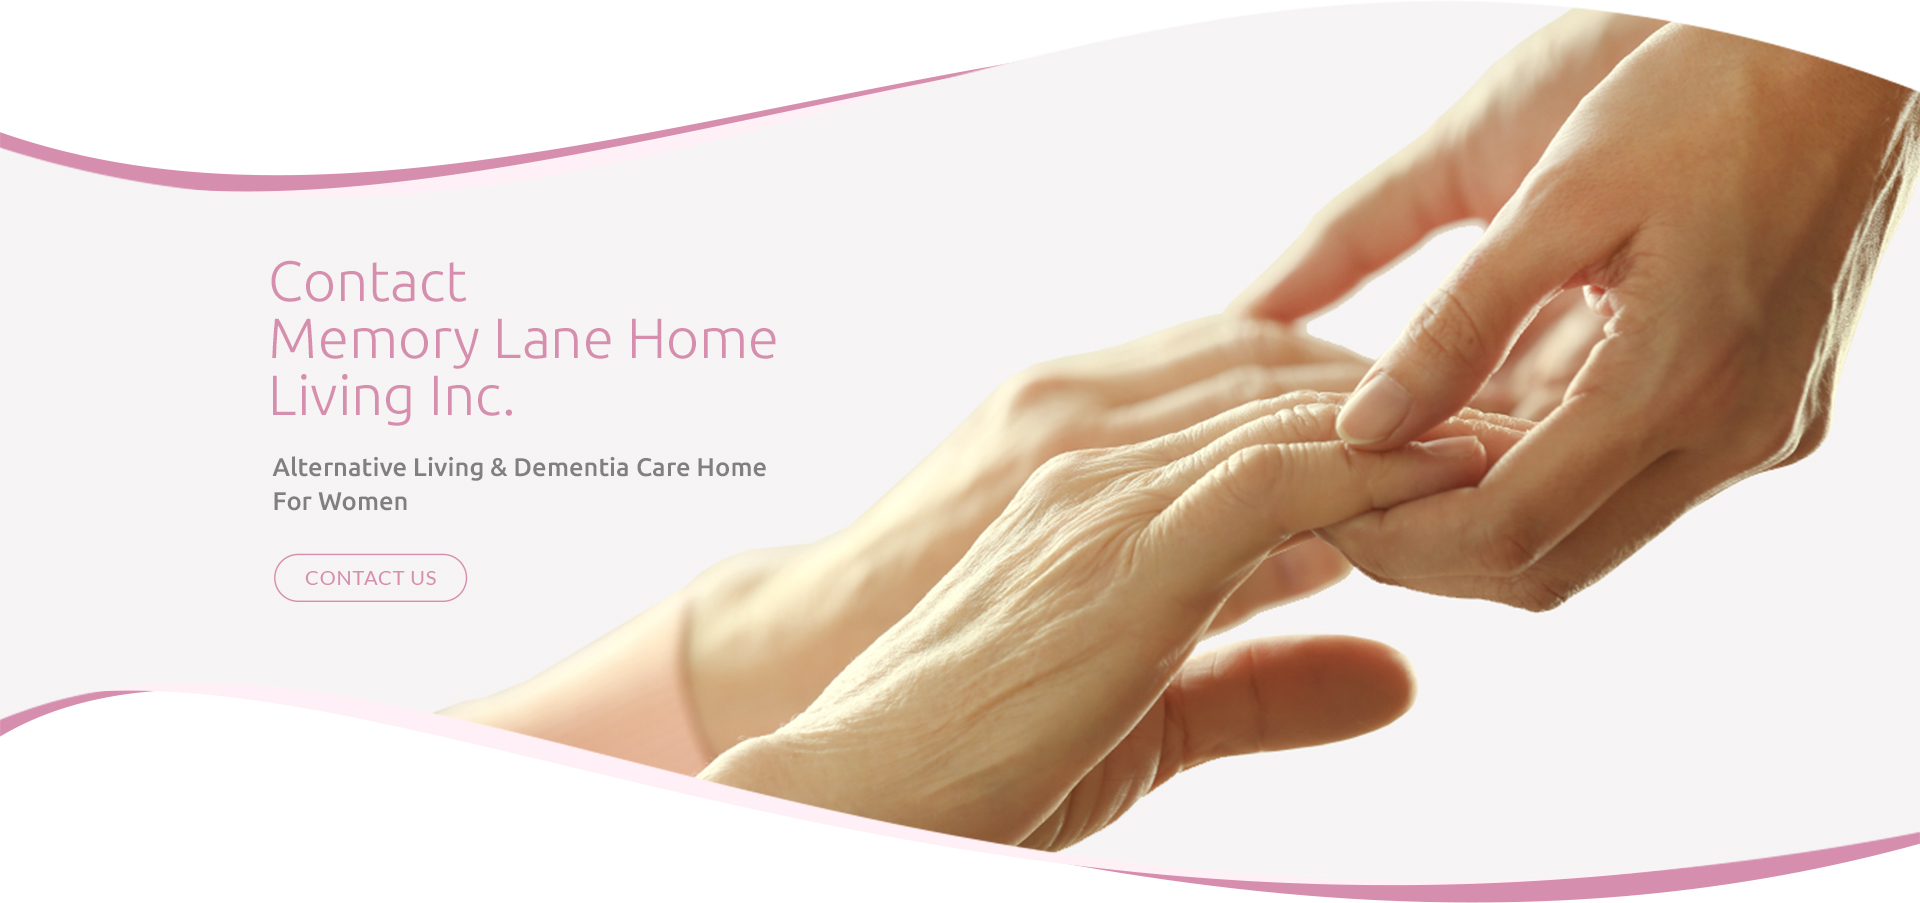 Memory Lane Home Living Inc. - Assisted Living and Dementia Care Home for Women